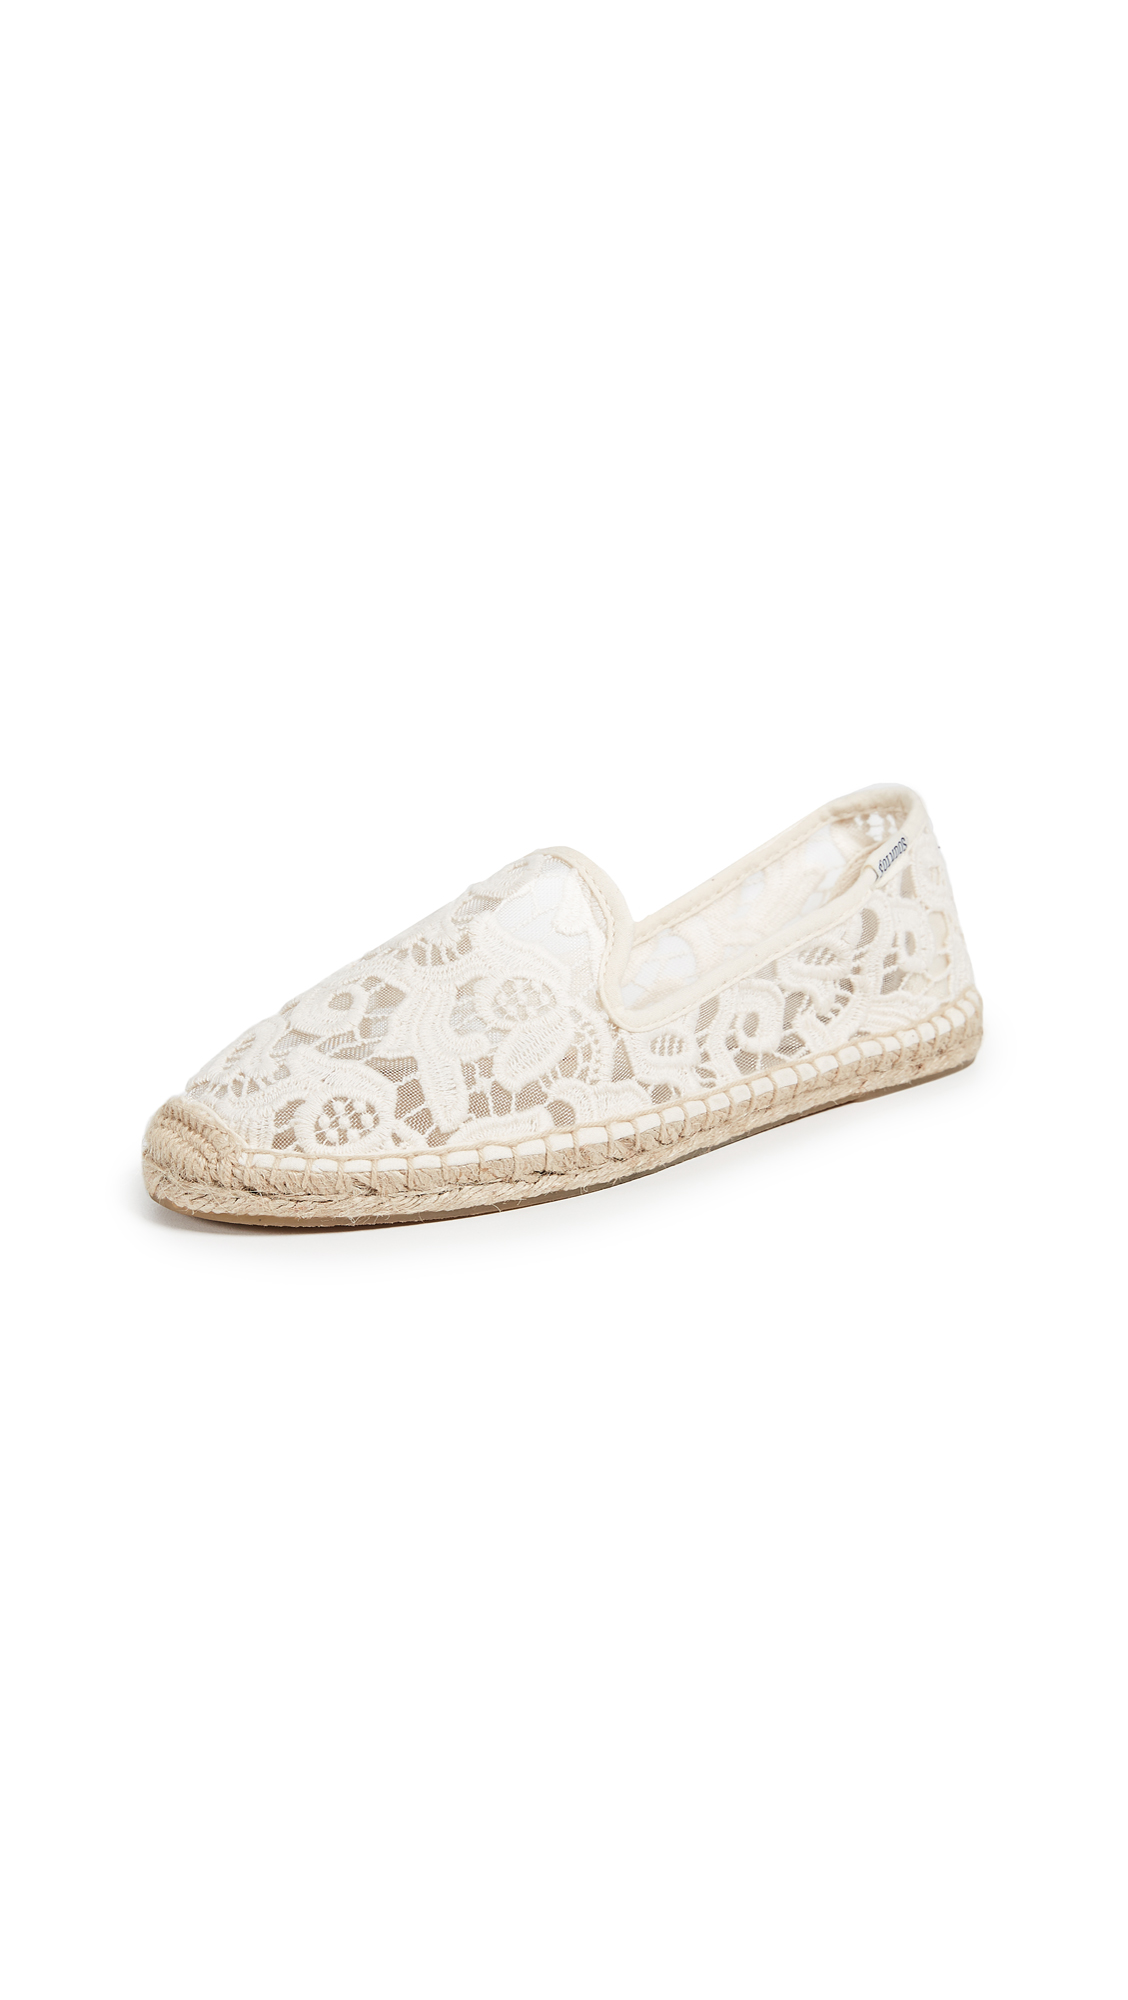 Soludos Tulip Lace Smoking Slipper Espadrilles - Ivory